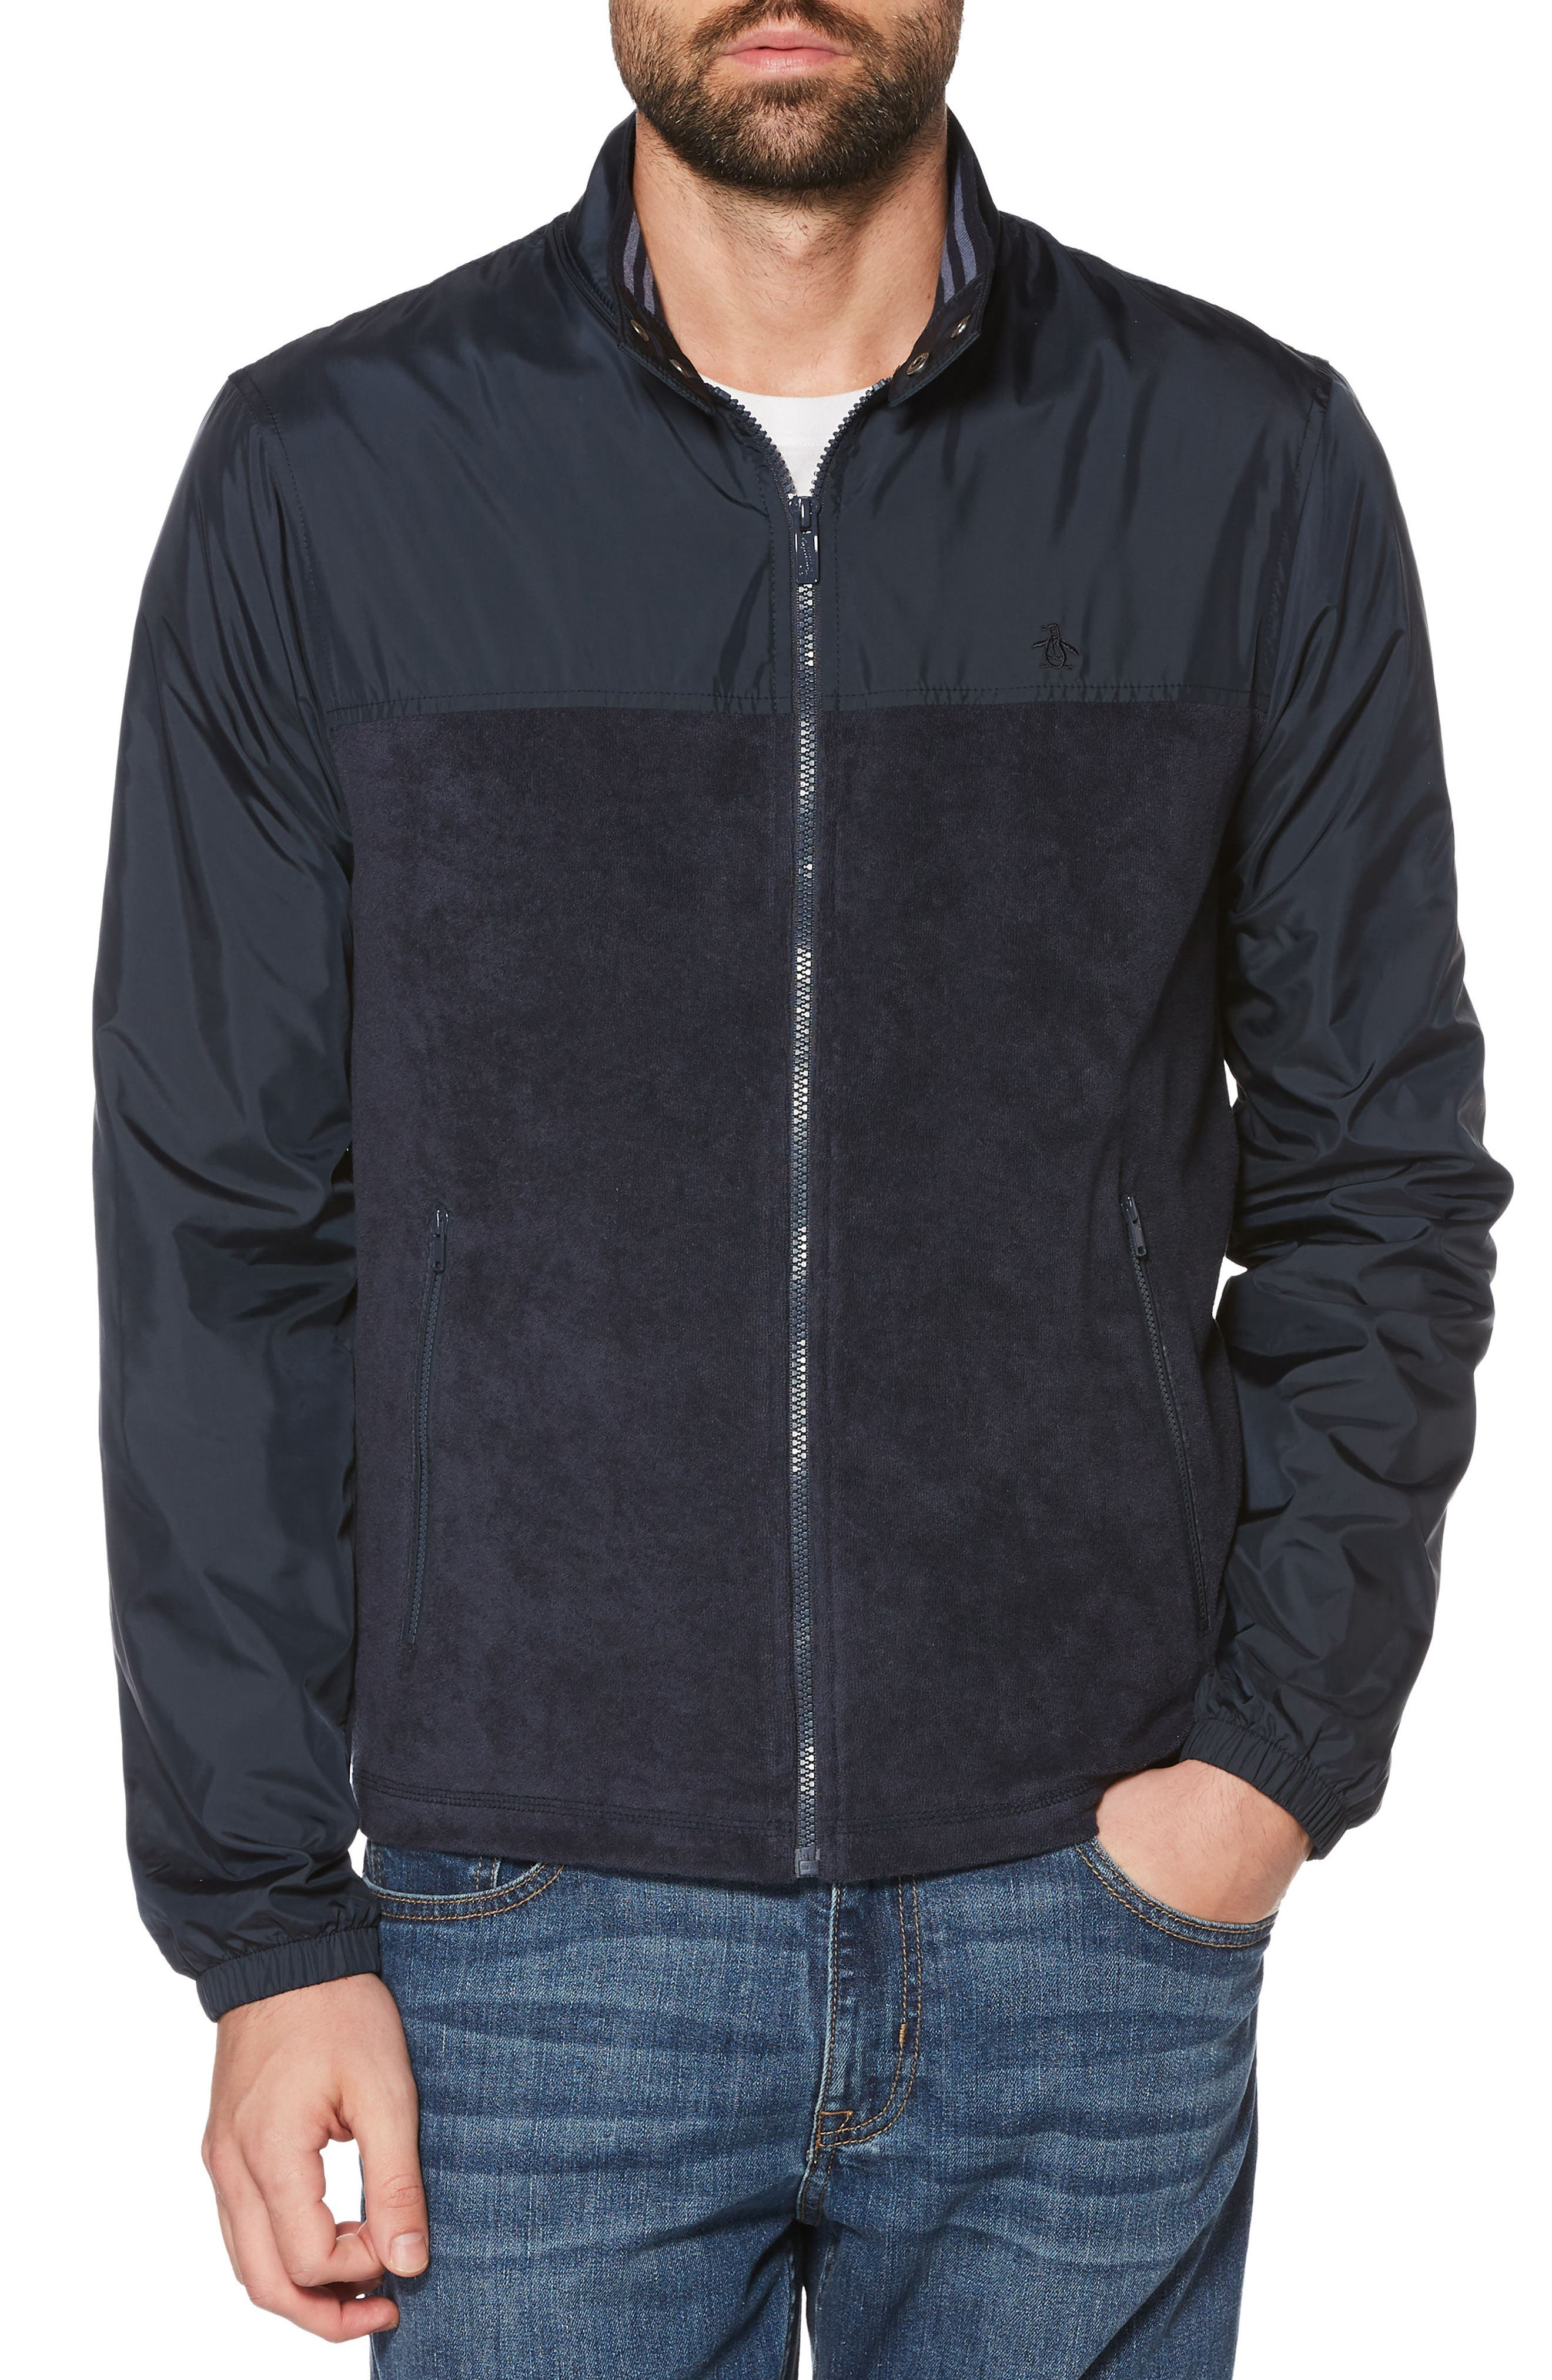 Alternate Image 1 Selected - Original Penguin Vintage Gym Ratner Jacket